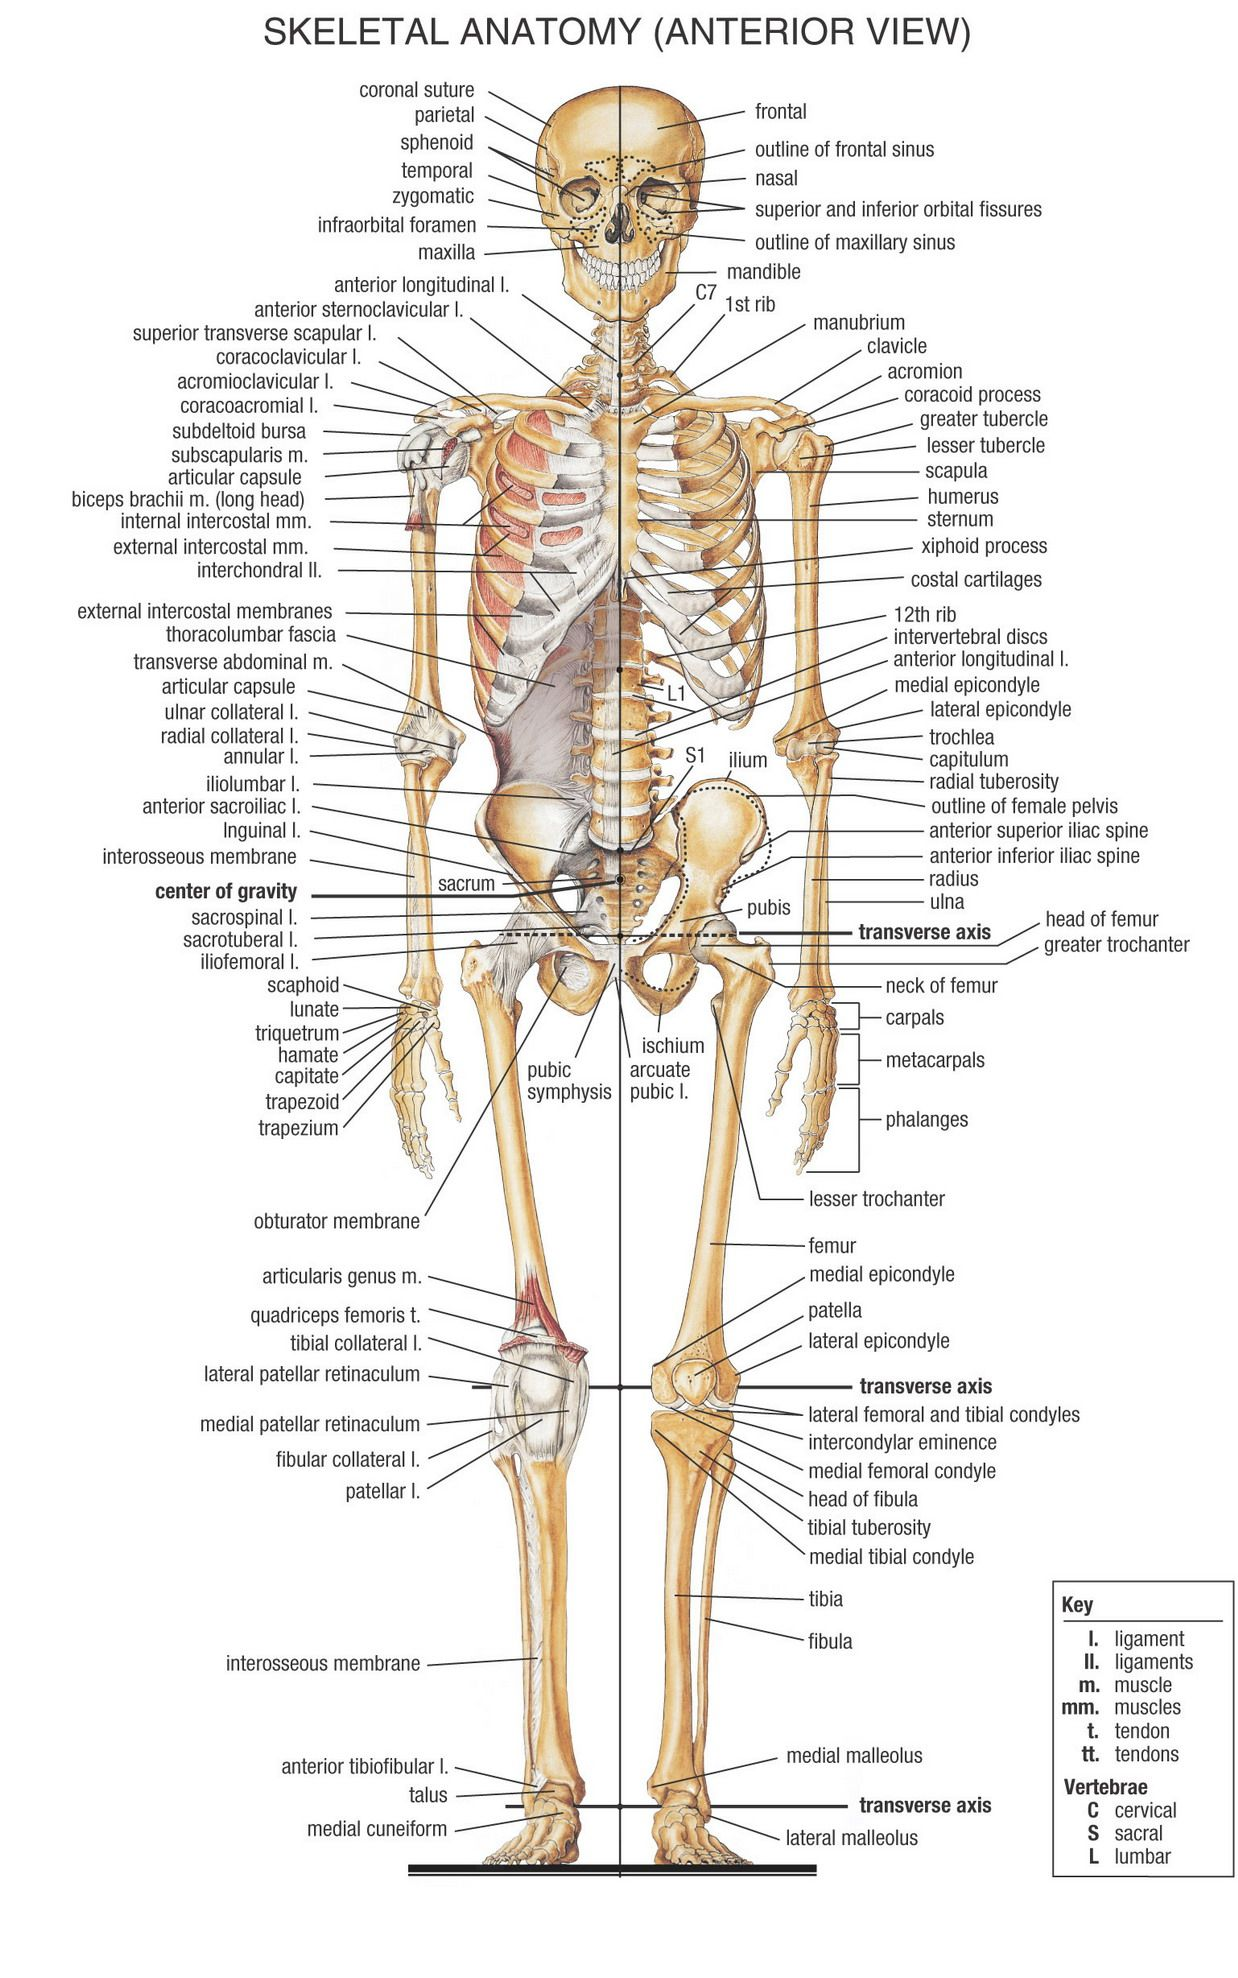 Pin By Heather L On Systems Musculoskeletal Pinterest Anatomy